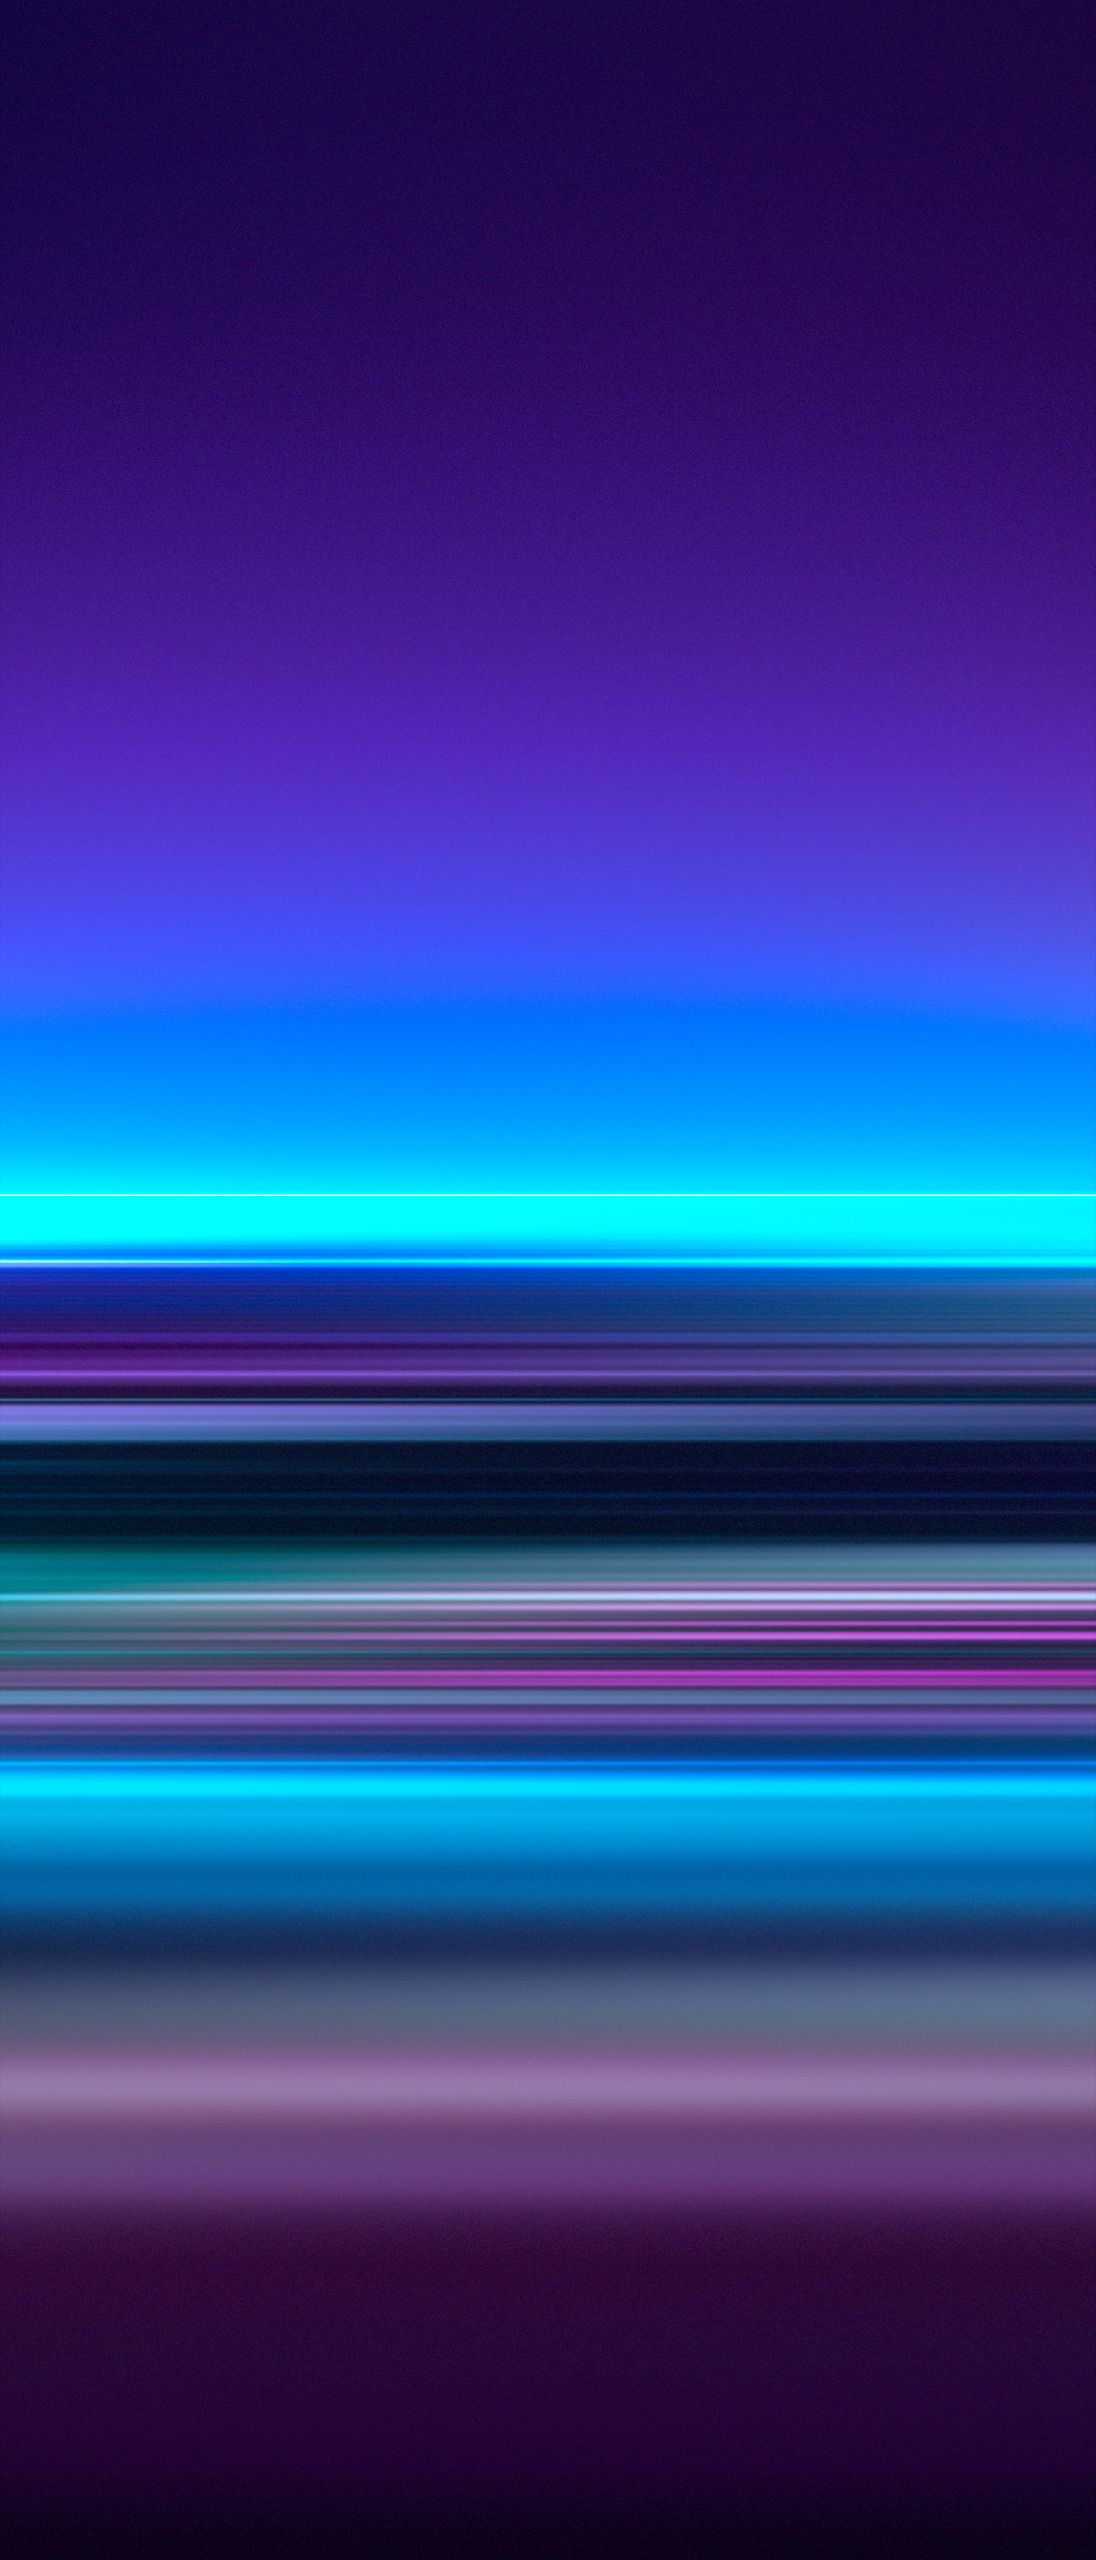 Sony Xperia 1 Stock Wallpaper 02 1096x2560